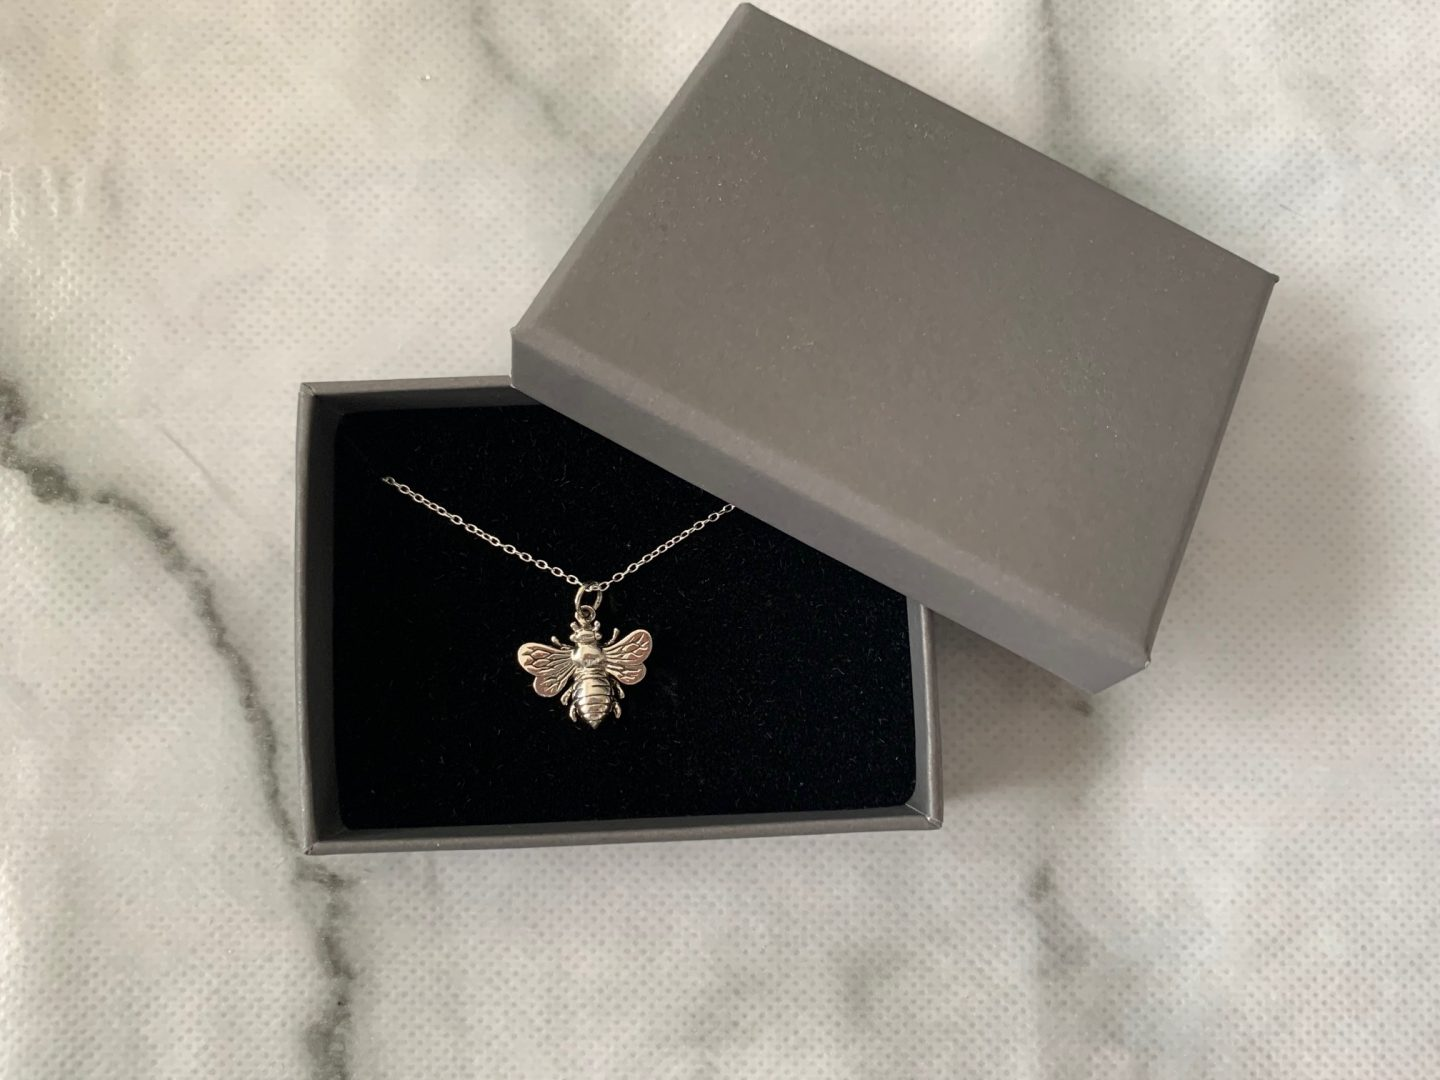 jewel editions bumble bee necklace review